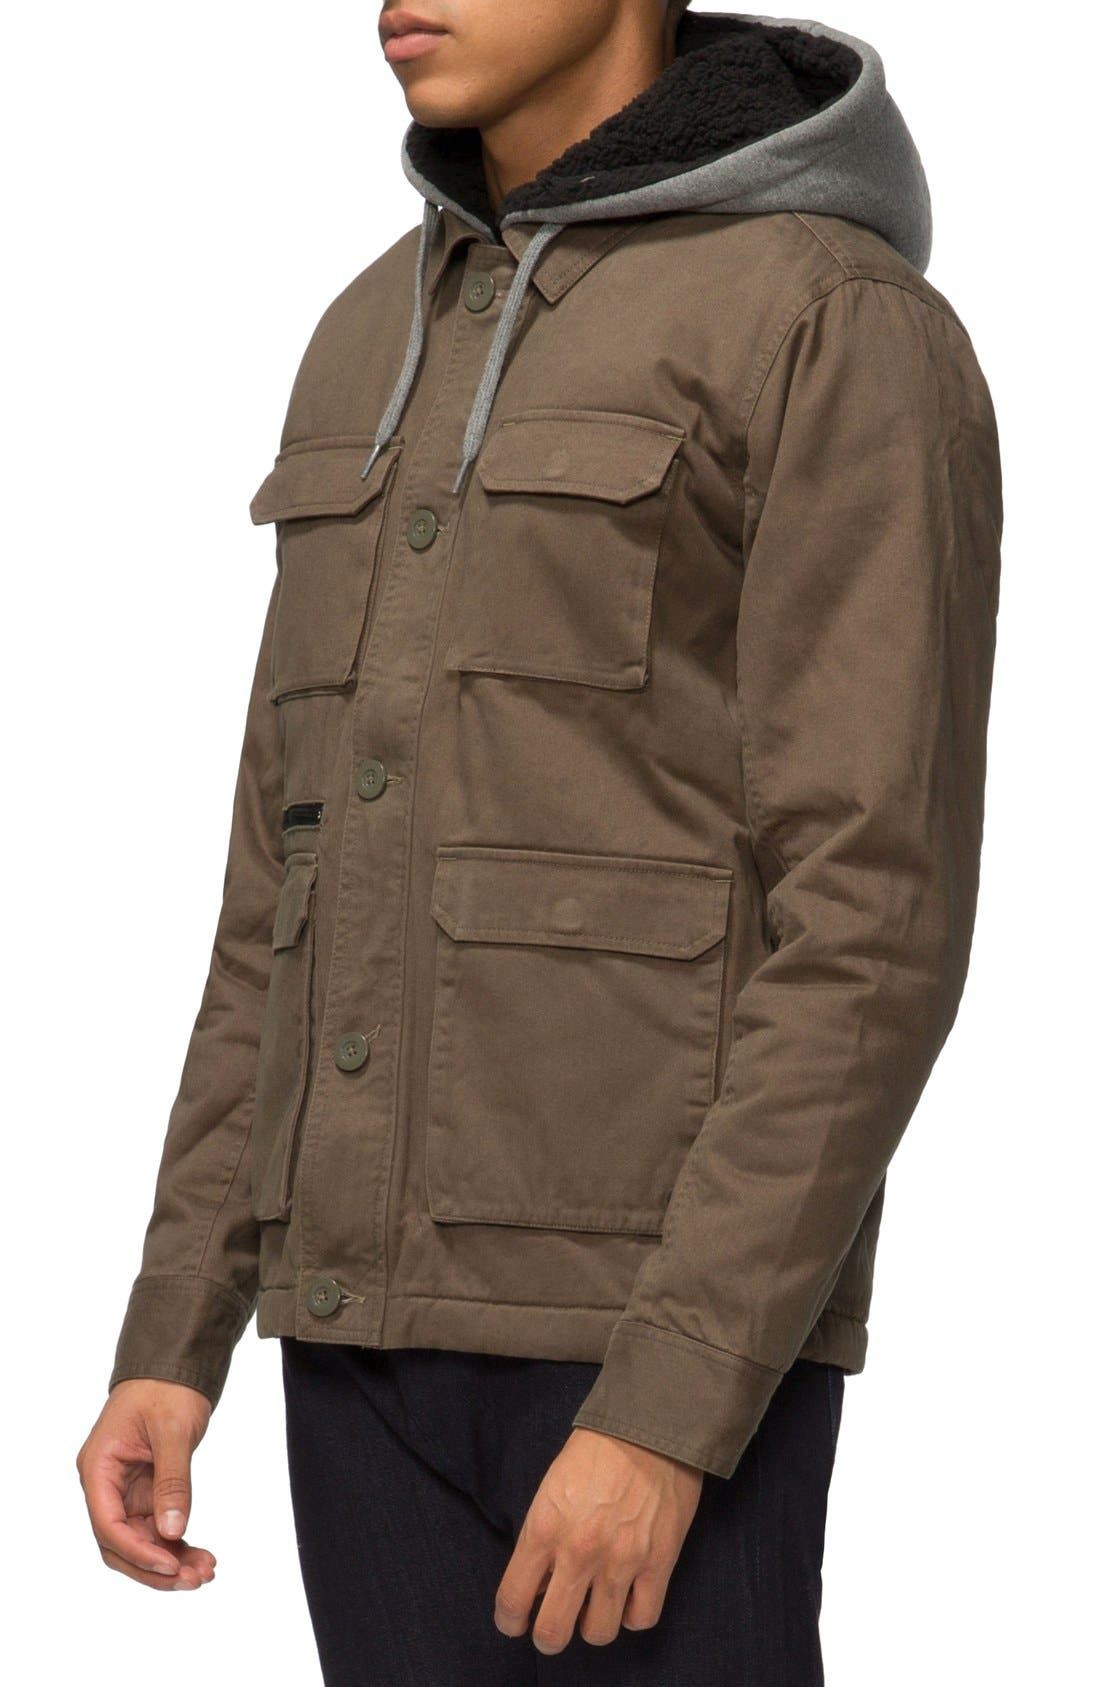 Droogs Plus Field Jacket with Detachable Hood,                             Alternate thumbnail 3, color,                             Olive/ Heather Grey